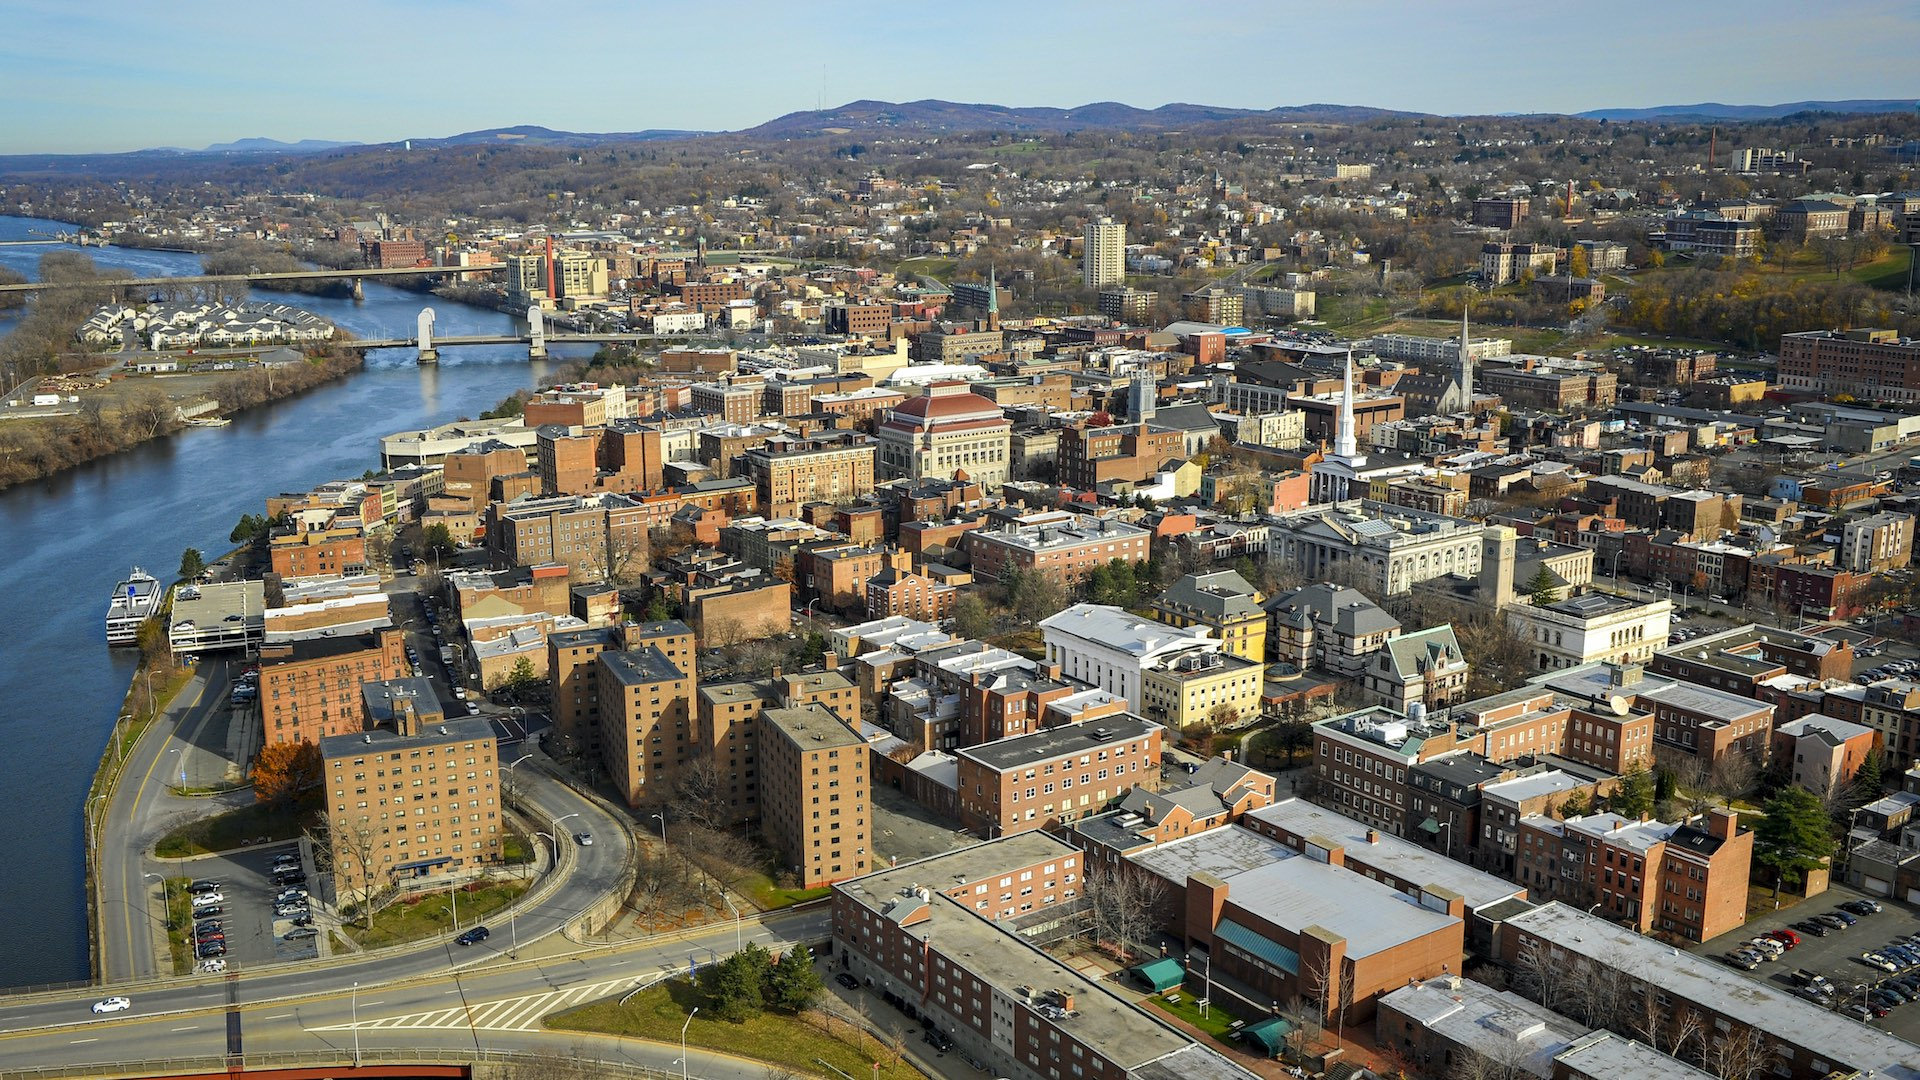 Aerial View - Troy